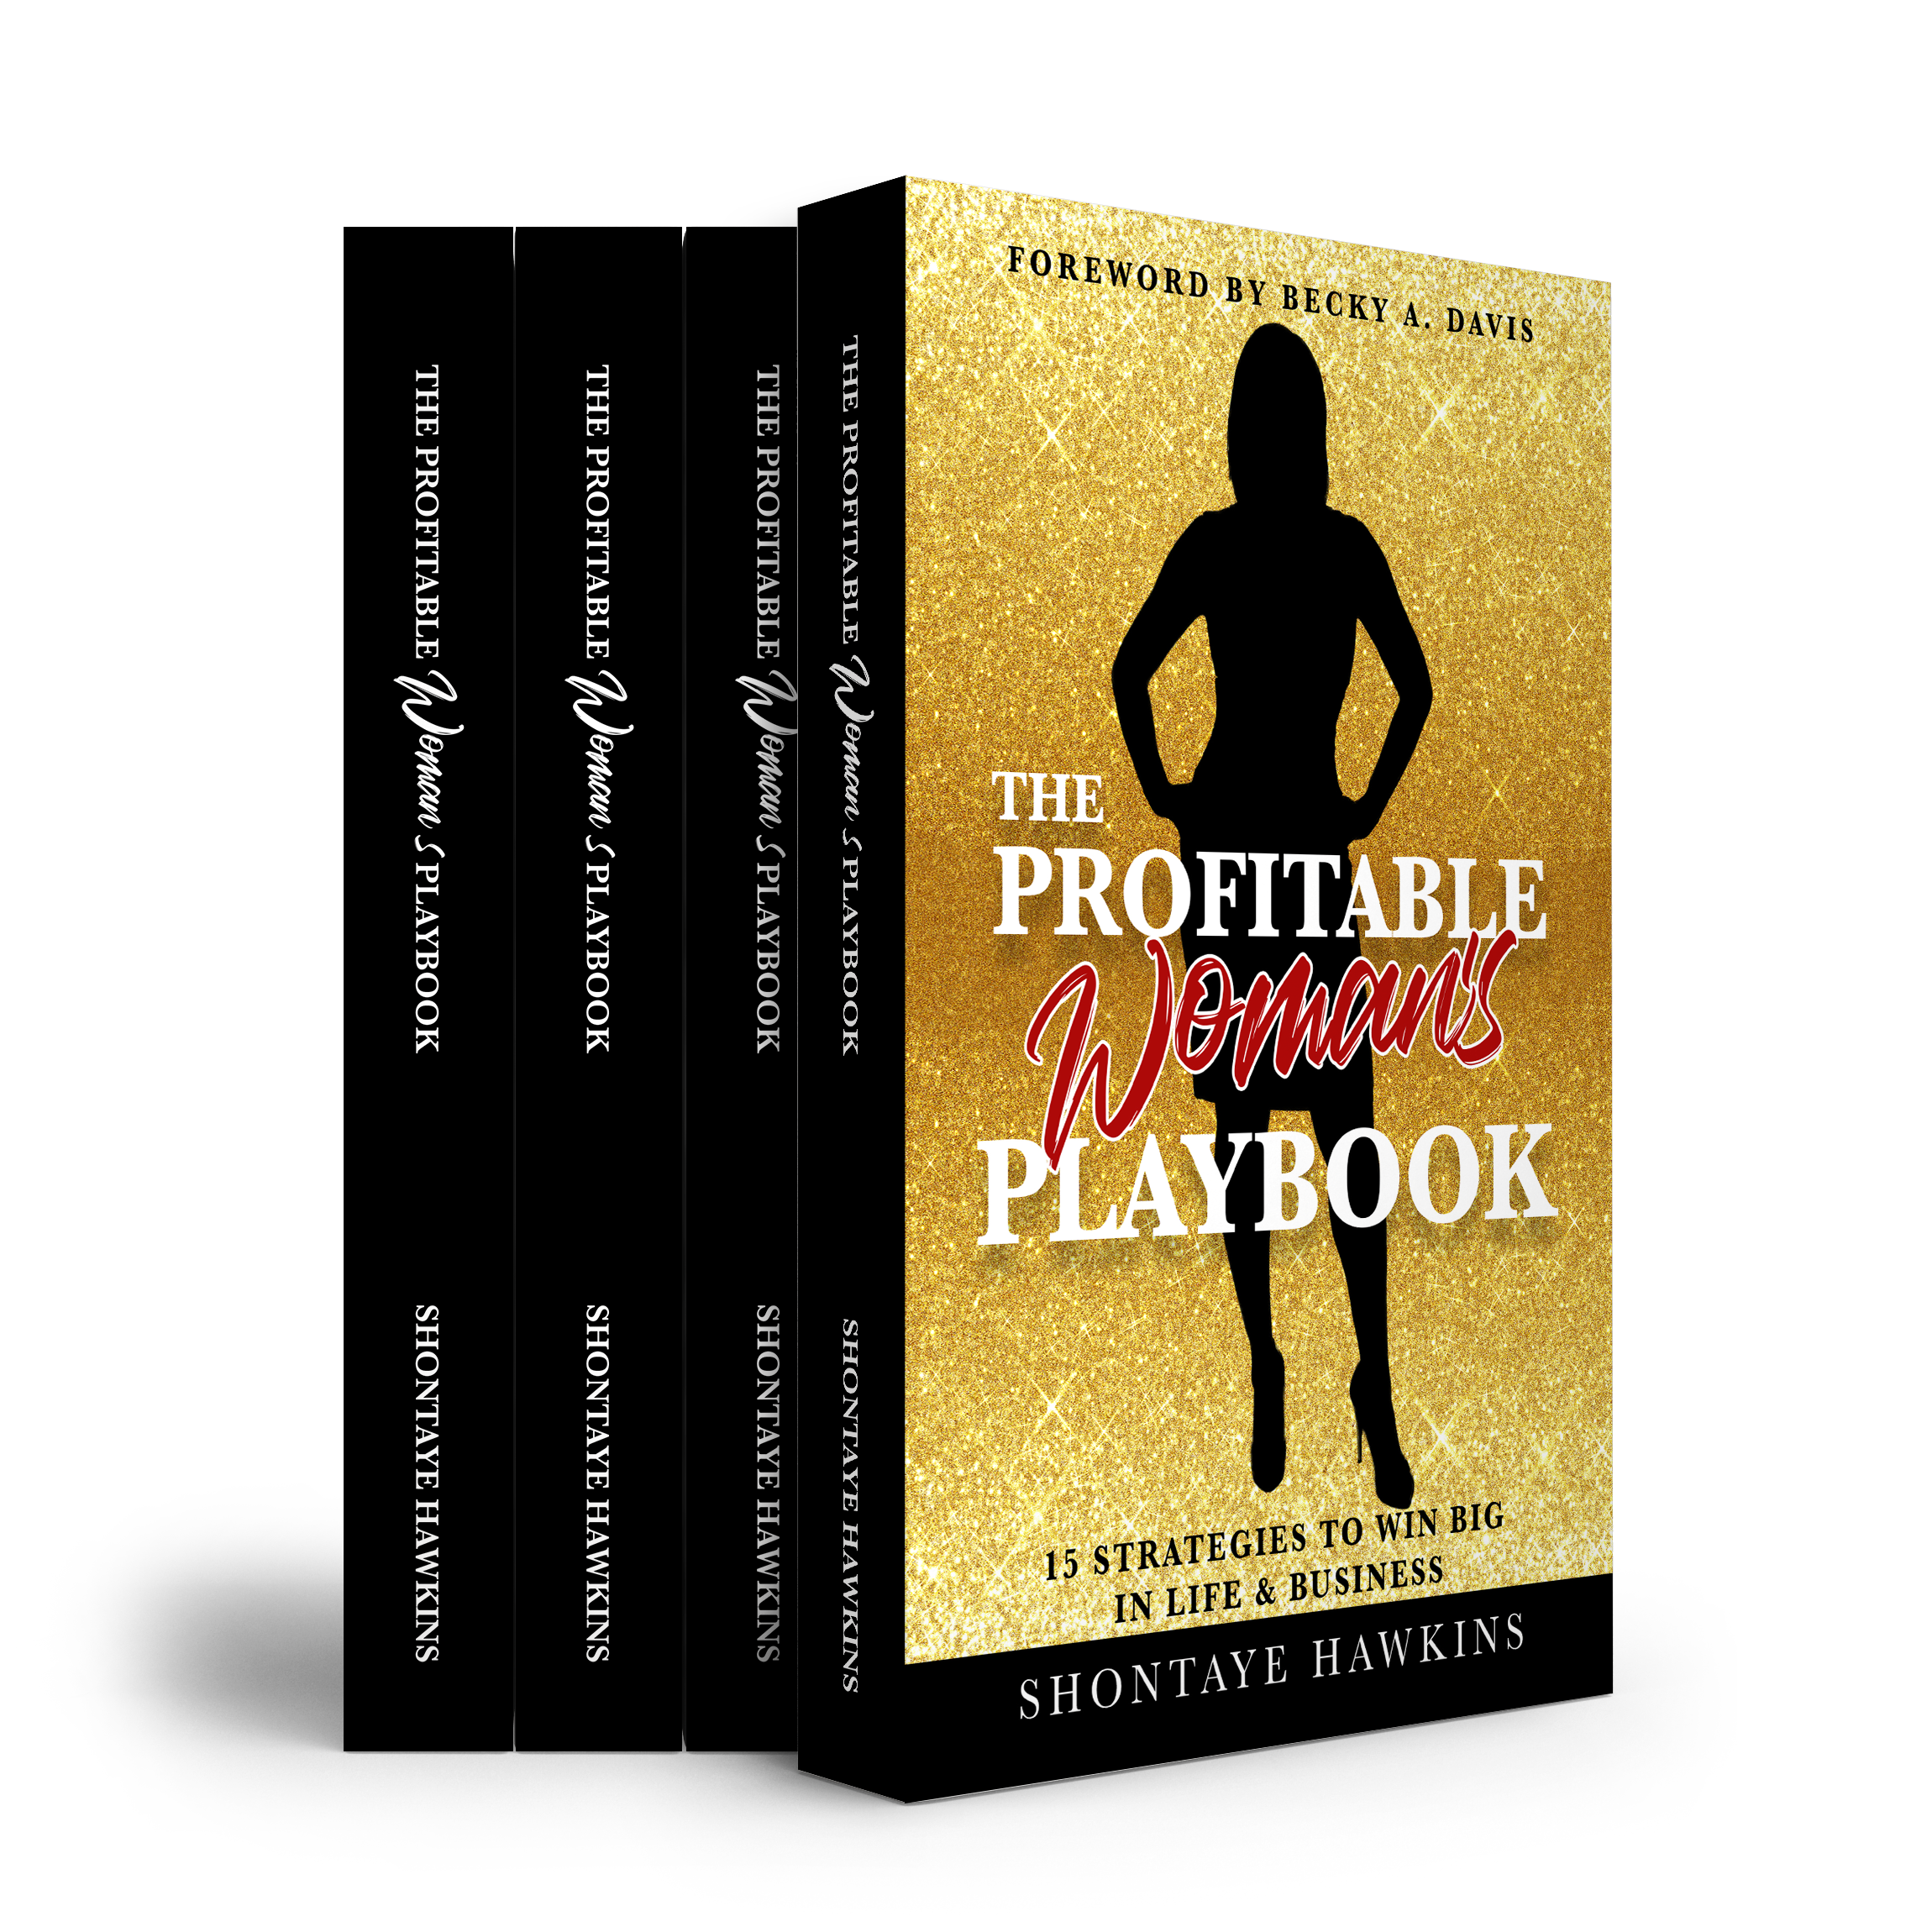 The Profitable Woman's Playbook